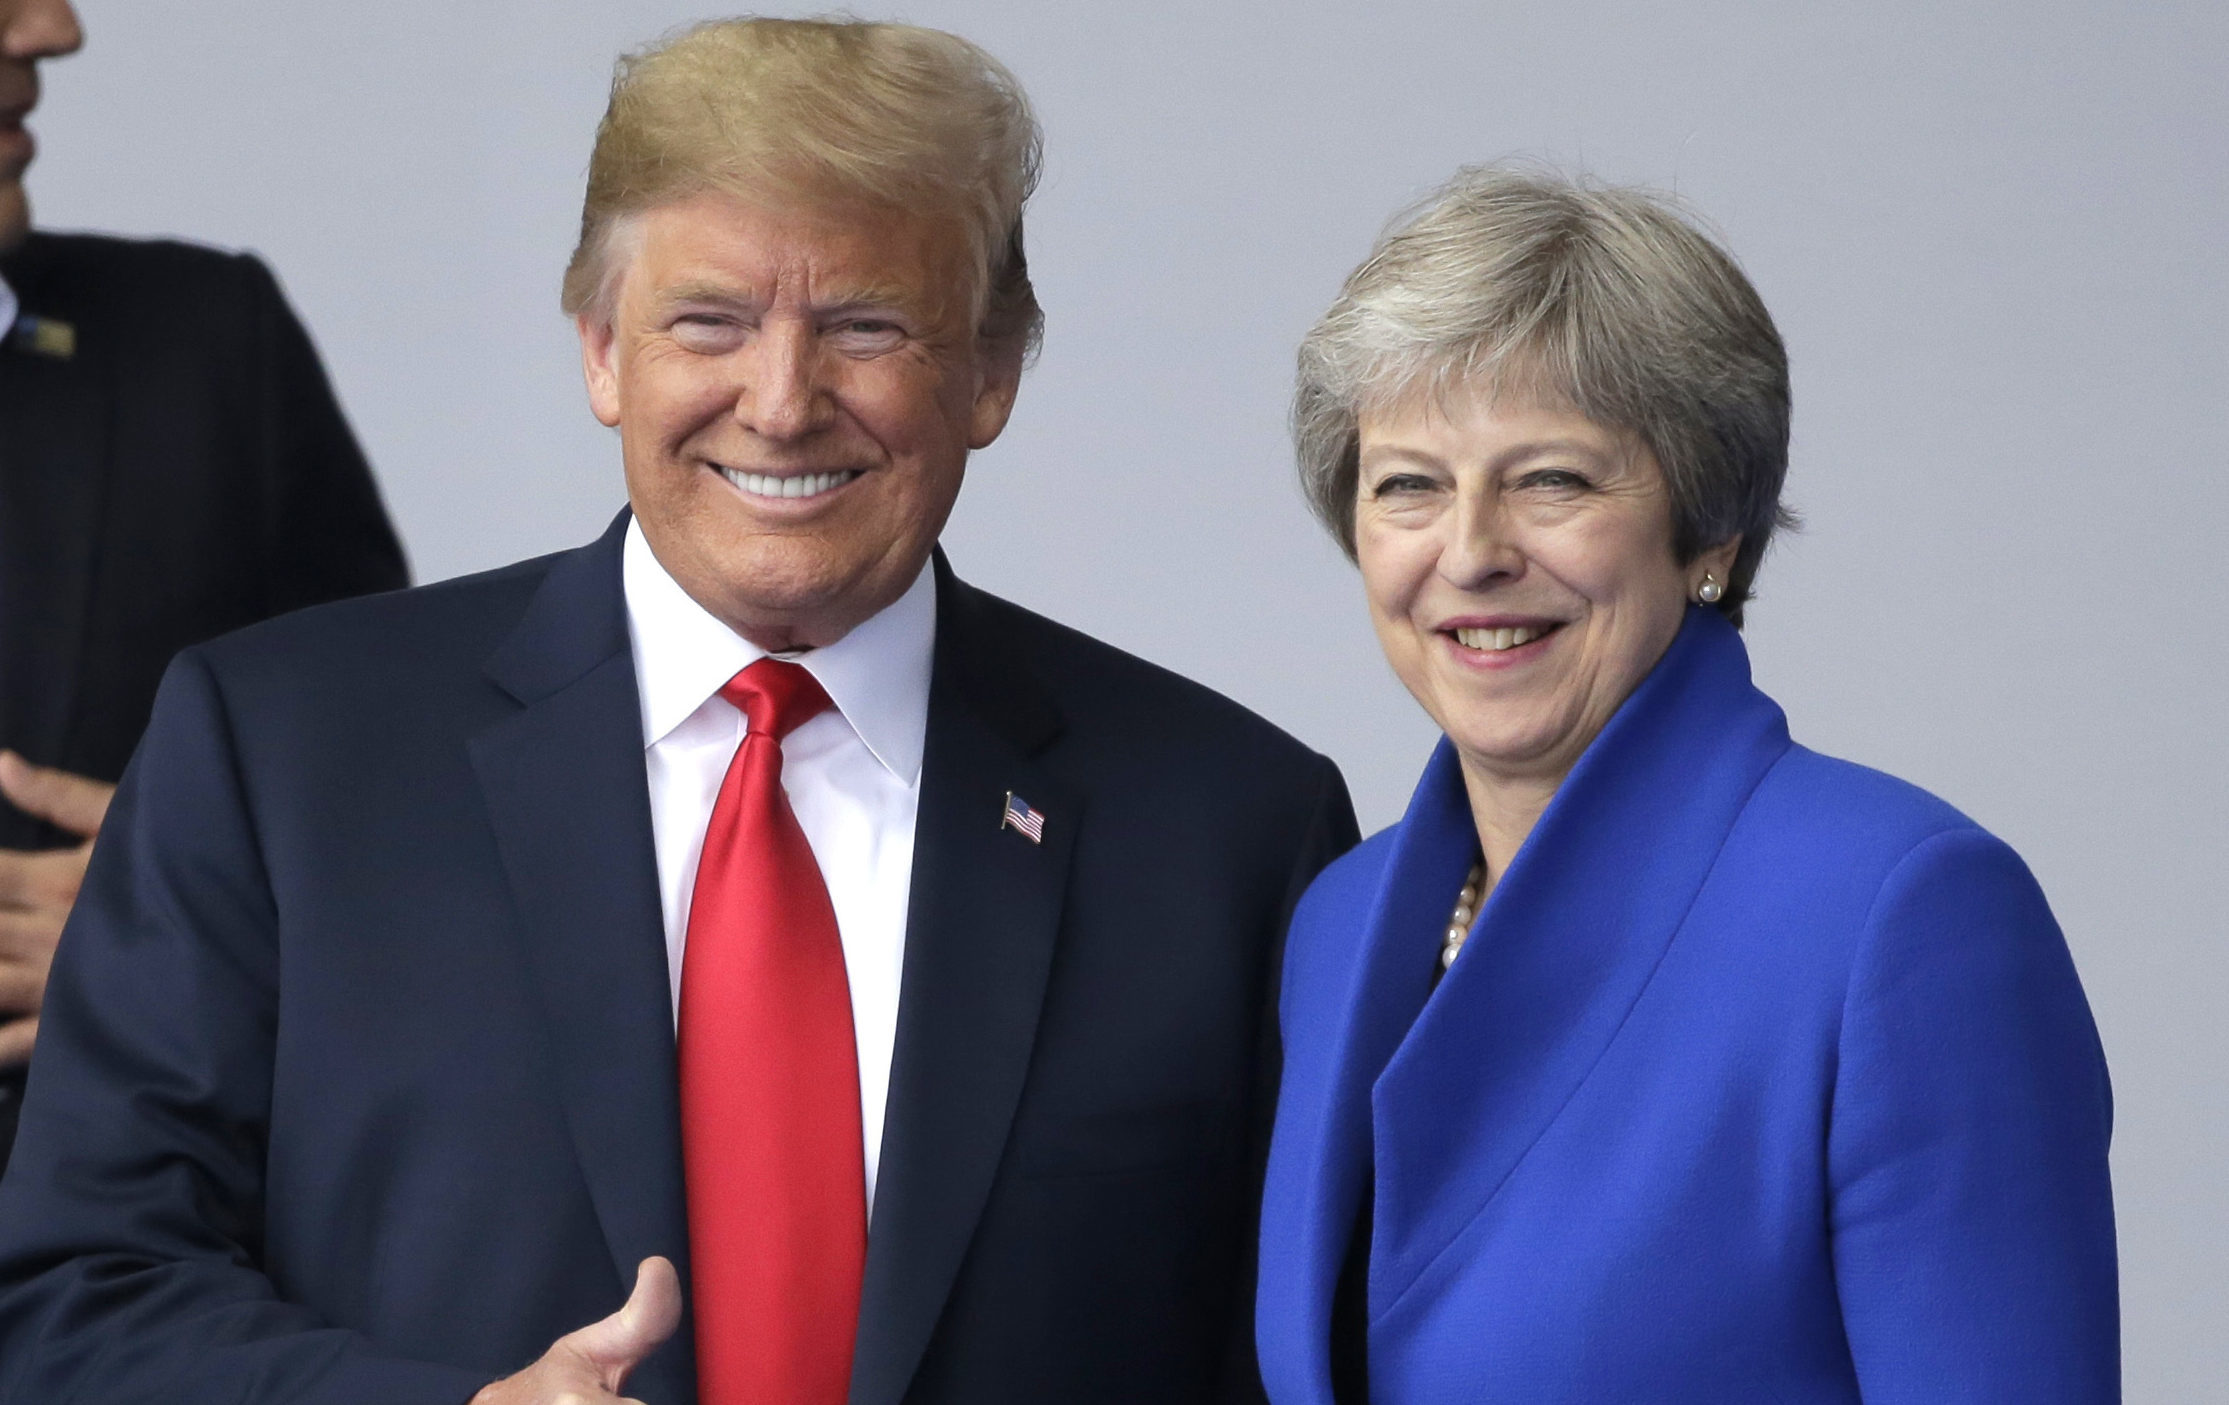 Donald Trump and Theresa May (AP Photo/Markus Schreiber)